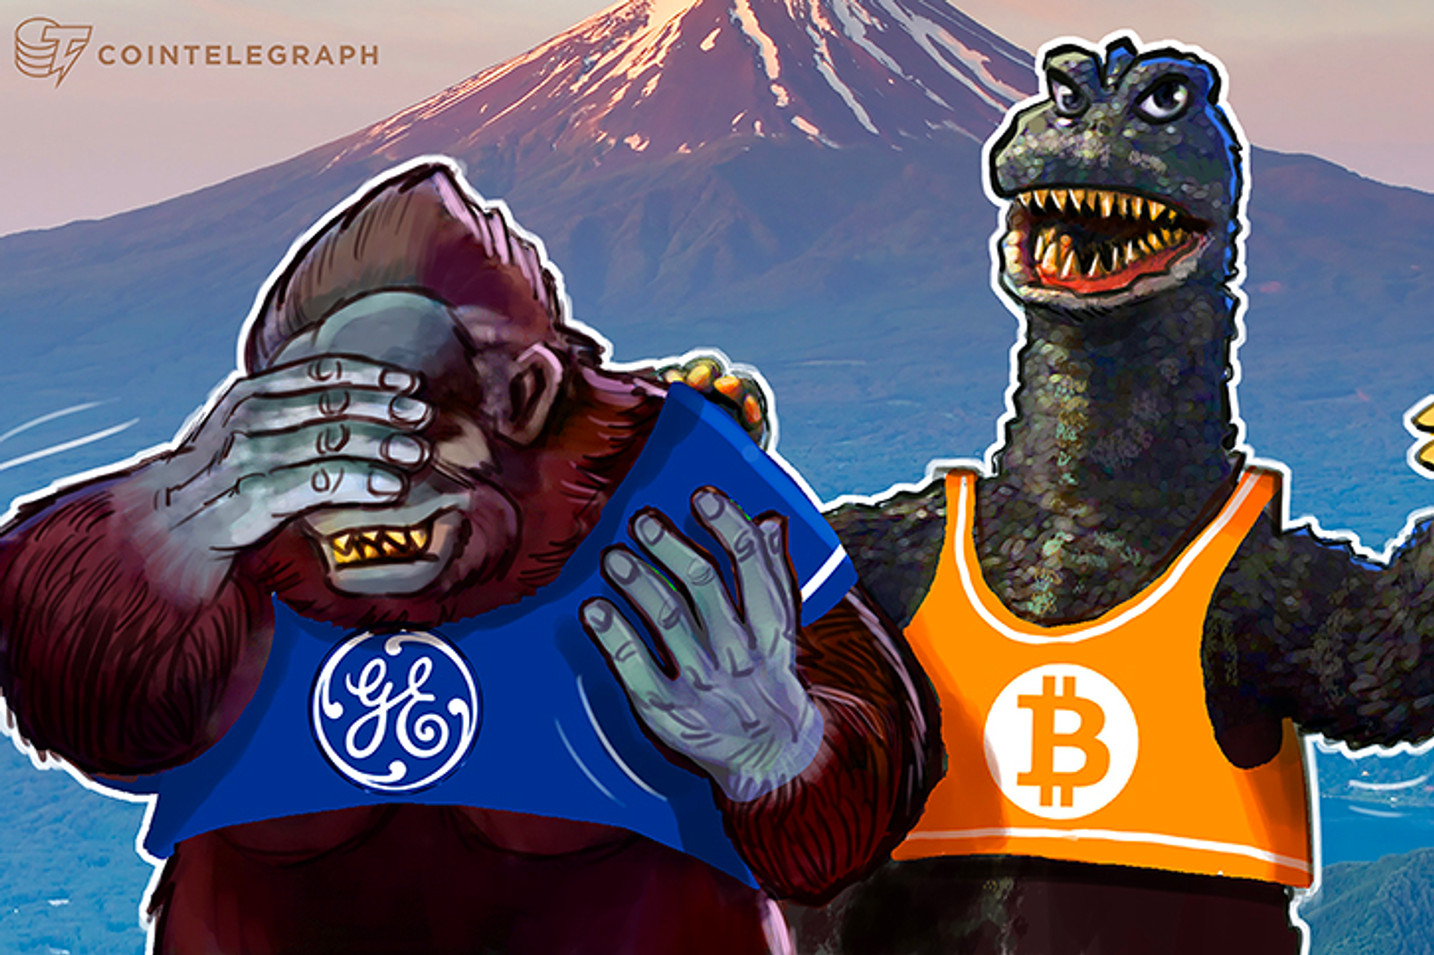 At $160 Bln, Bitcoin's Market Cap is Larger Than That of Once World's Largest Company